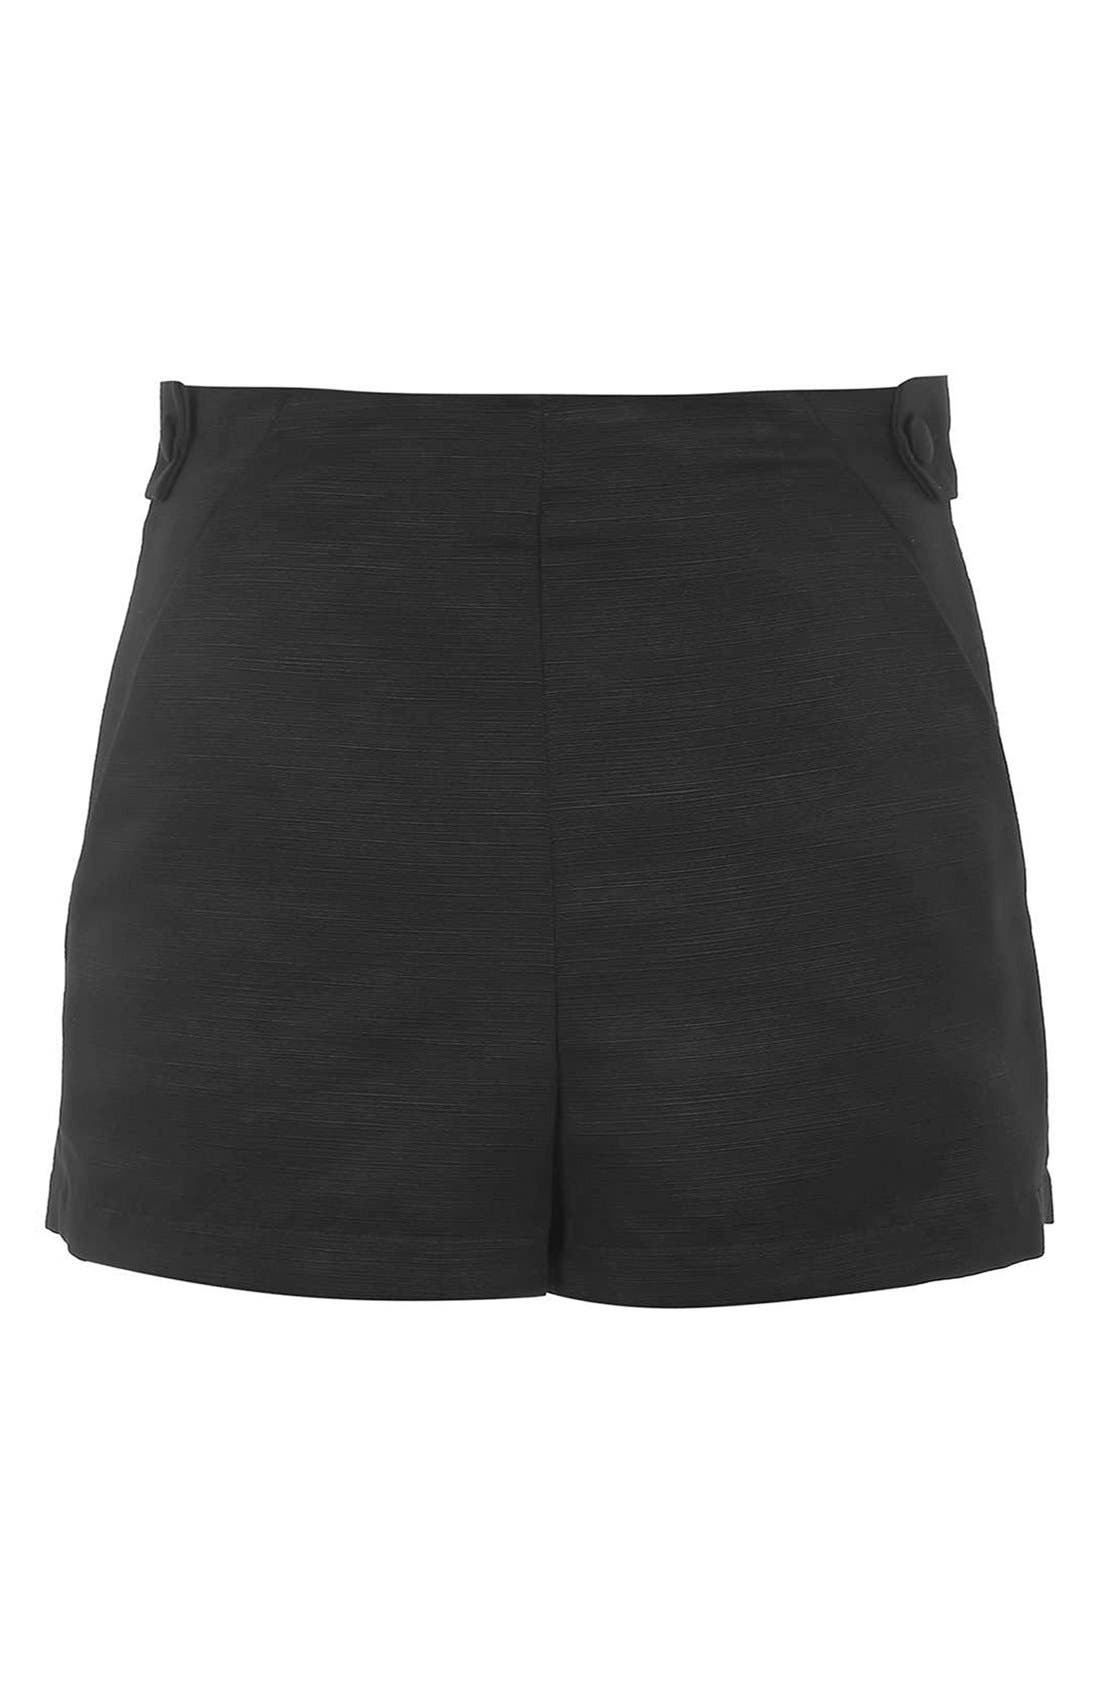 High Rise Button Tab Shorts,                             Alternate thumbnail 3, color,                             001